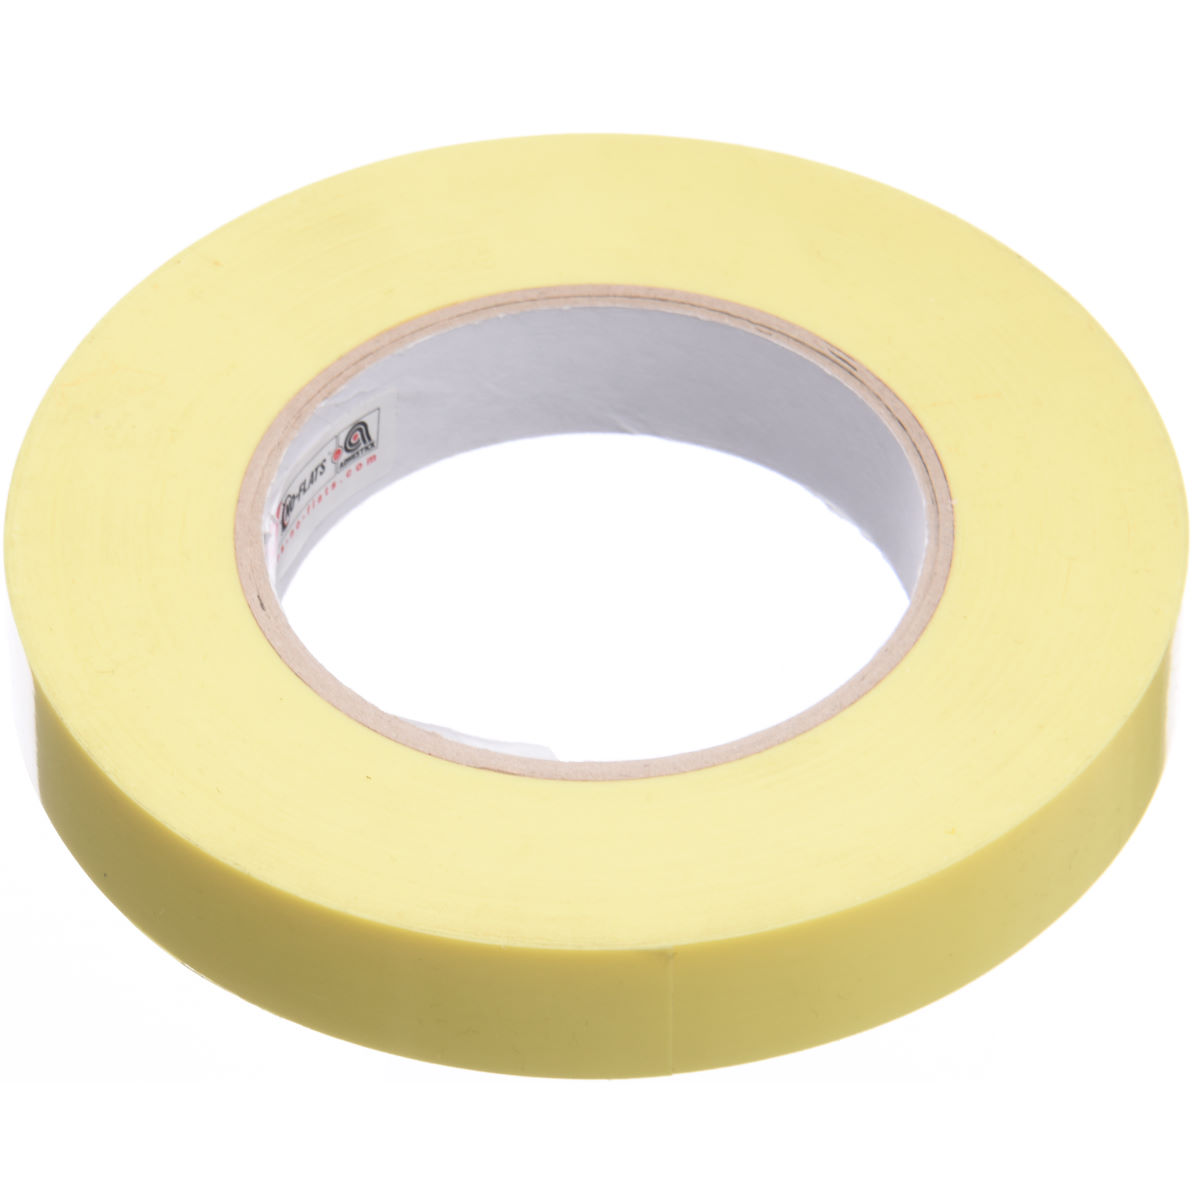 Joe's No Flats Tubeless Yellow Rim Tape - Fondos de llanta